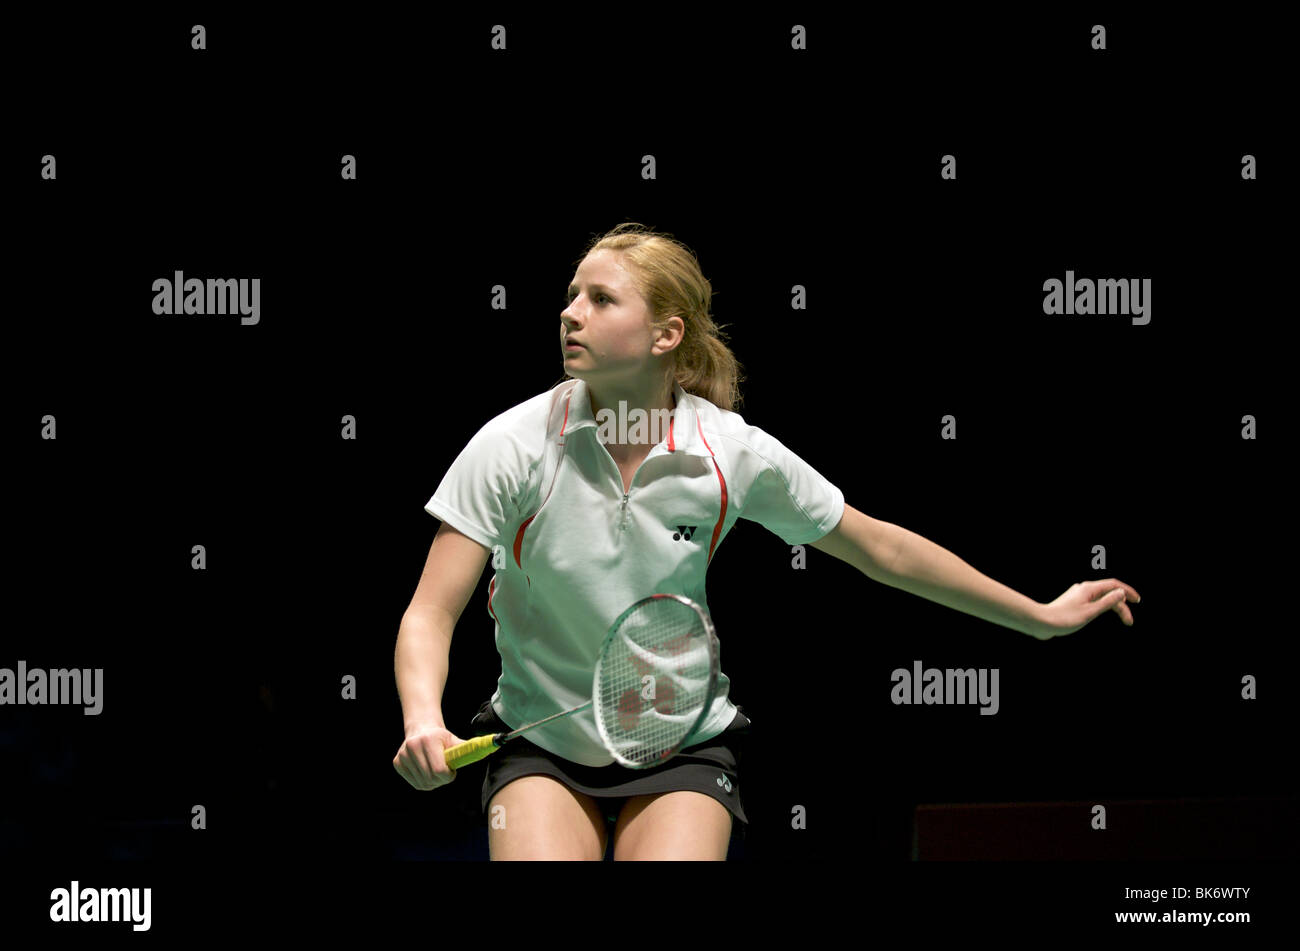 Anna Narel prepares to receive a serve at the European Badminton Championships in Mancester 2010 - Stock Image